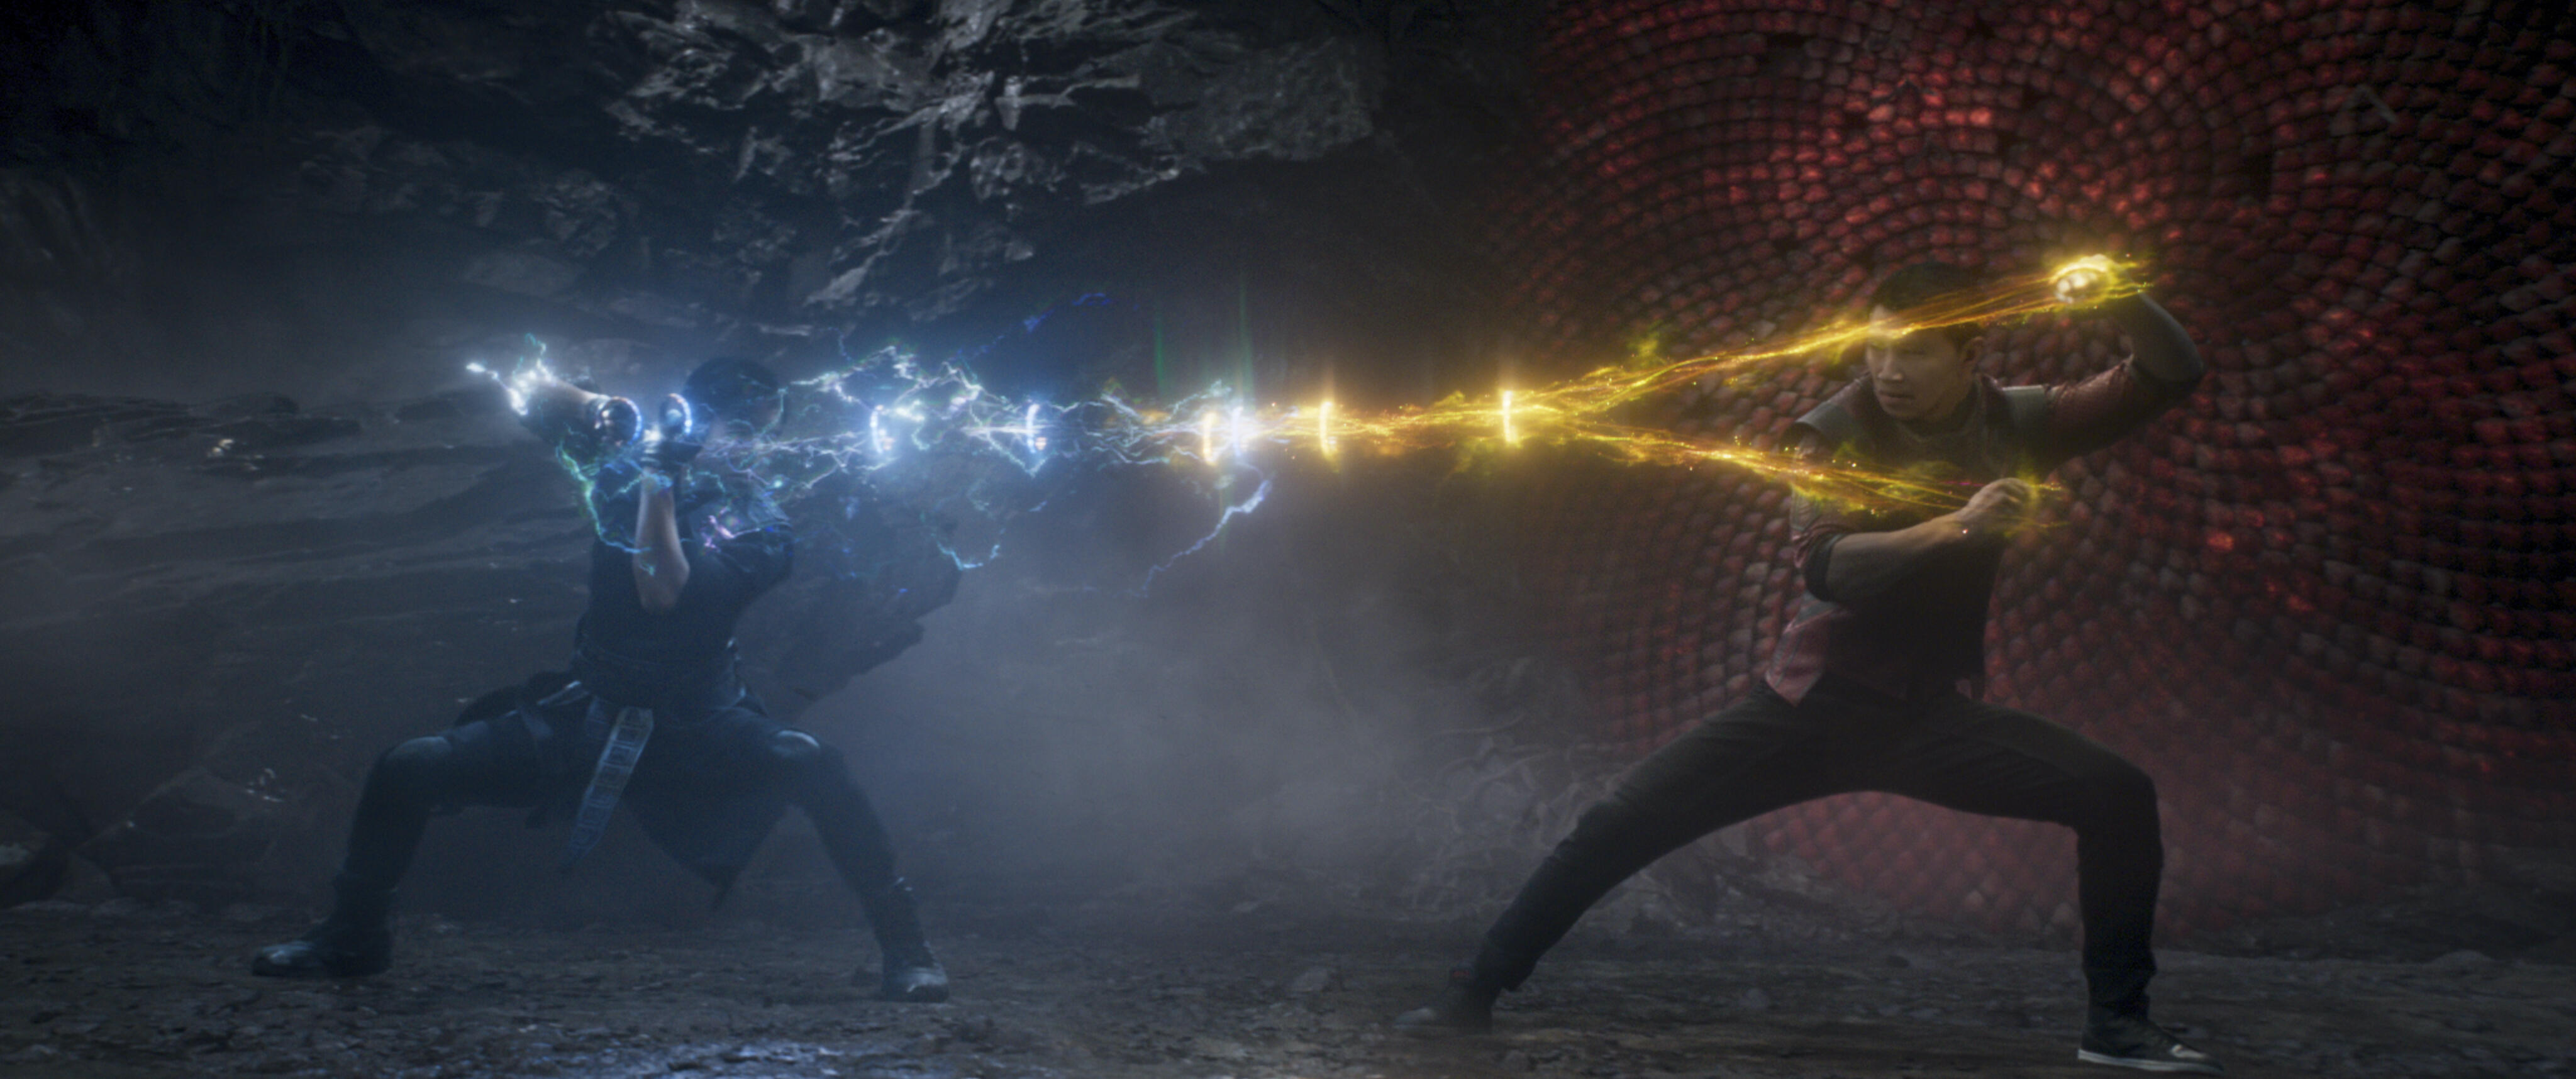 How Shang-Chi's fighting style changes in the new Marvel movie's ending -  CNET